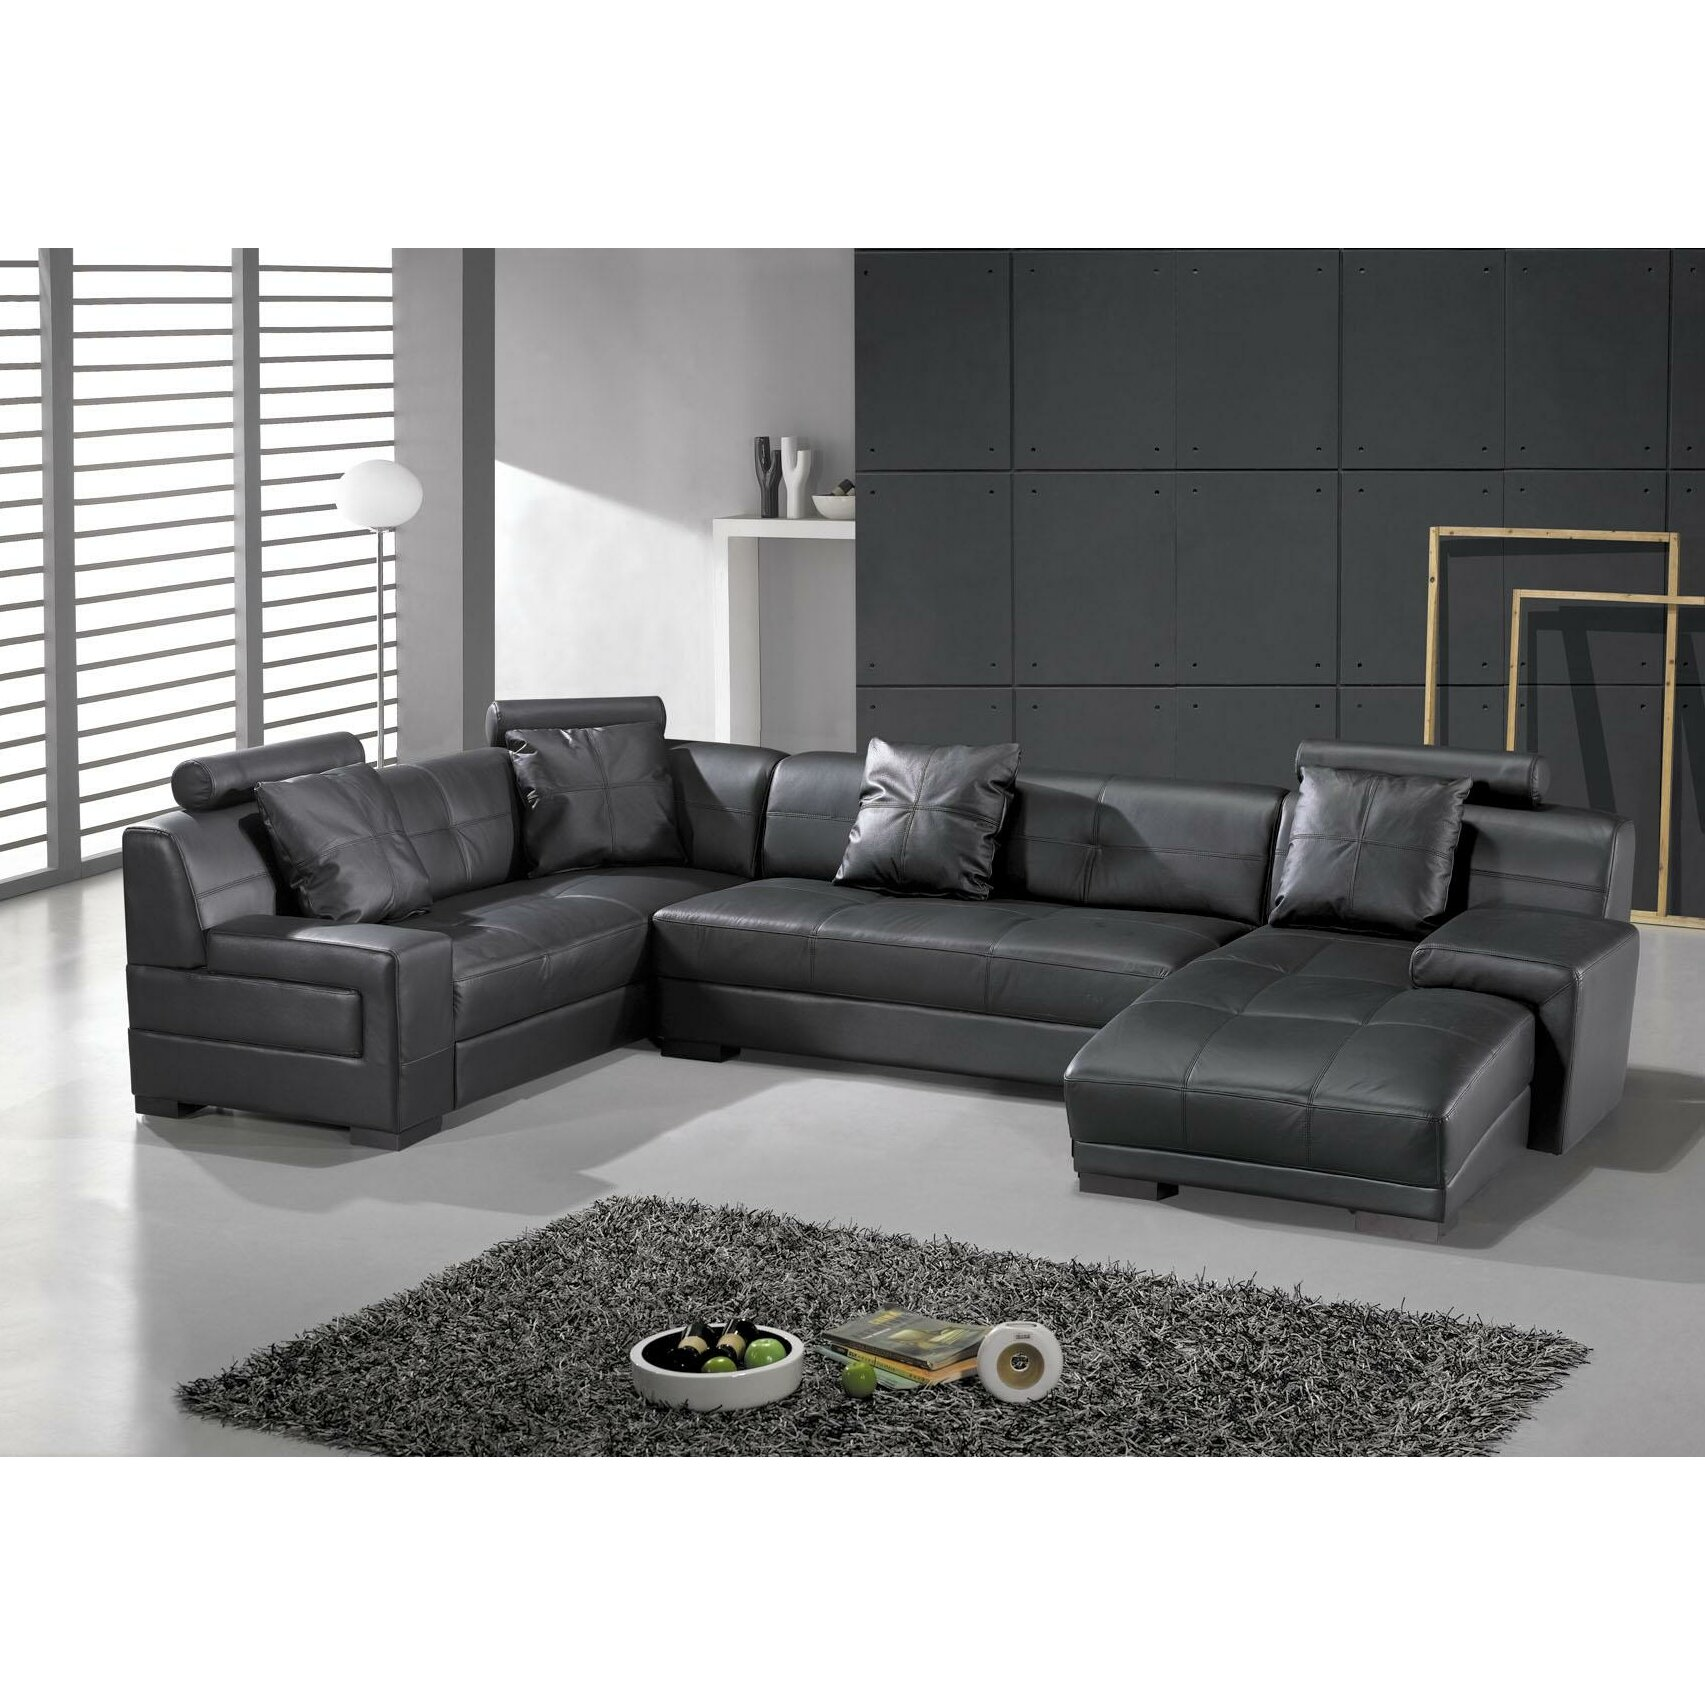 Sectional Sofa Sale Houston: Hokku Designs Houston Sectional & Reviews